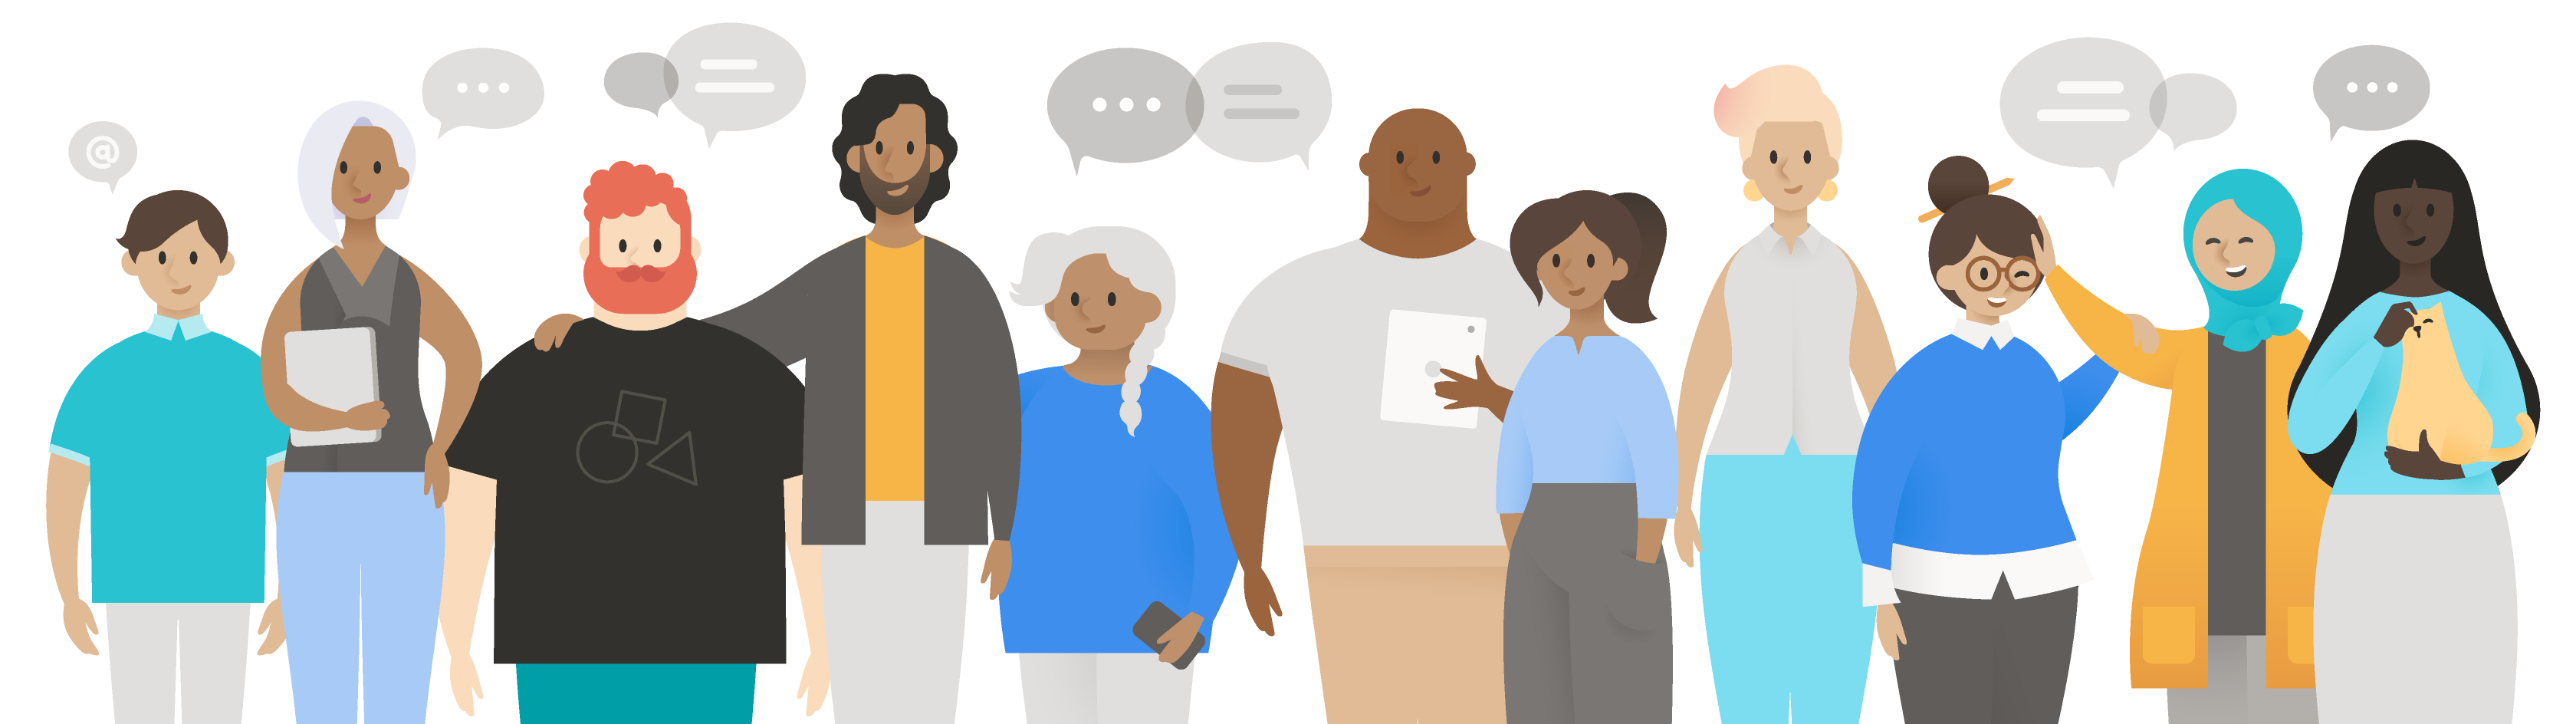 An illustration of of varying ages, genders, ethnicities, dress, and body types standing face forward.